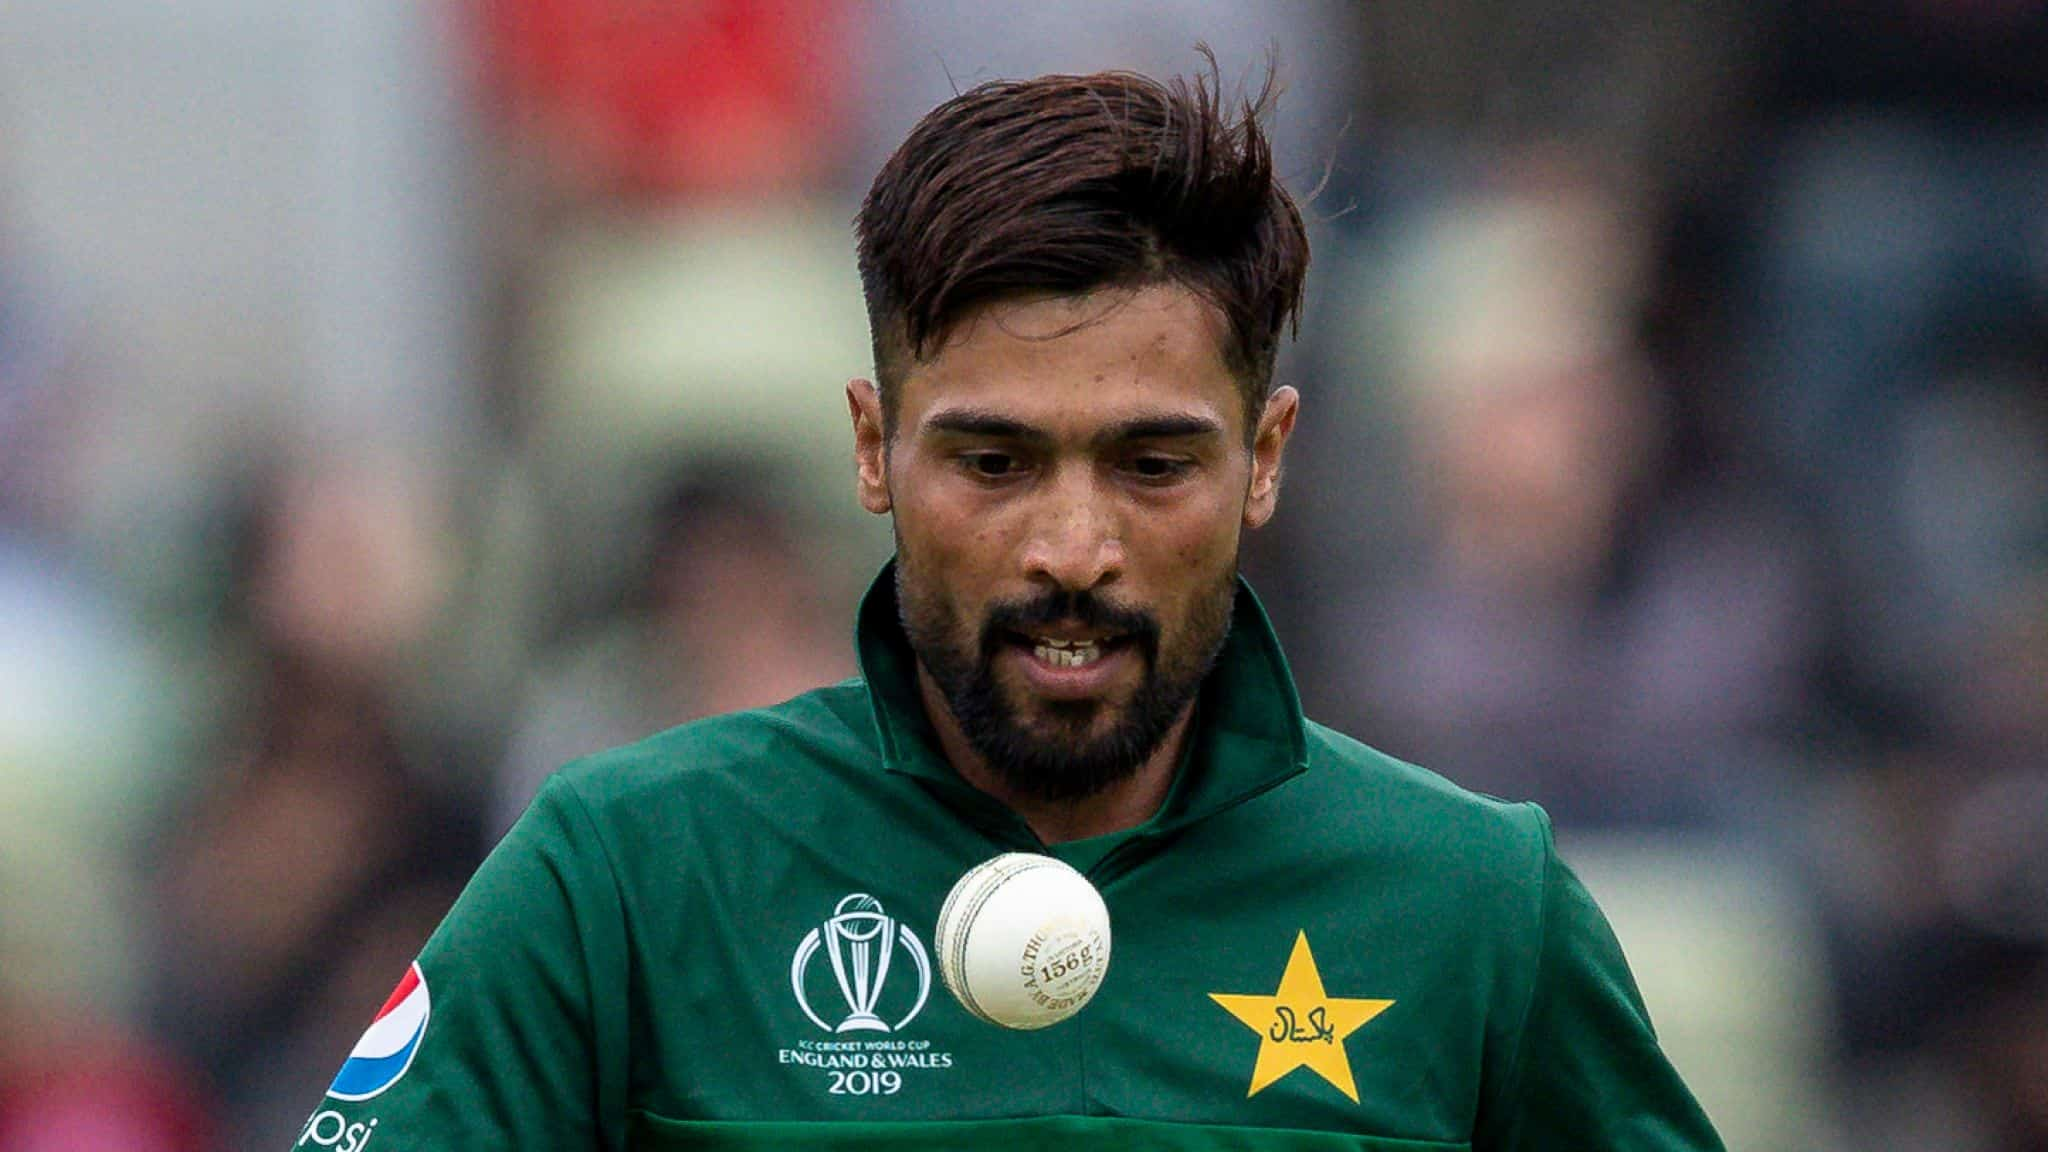 Mohammad Amir clears first round of the COVID-19 test. Photo Courtesy: The Current PK